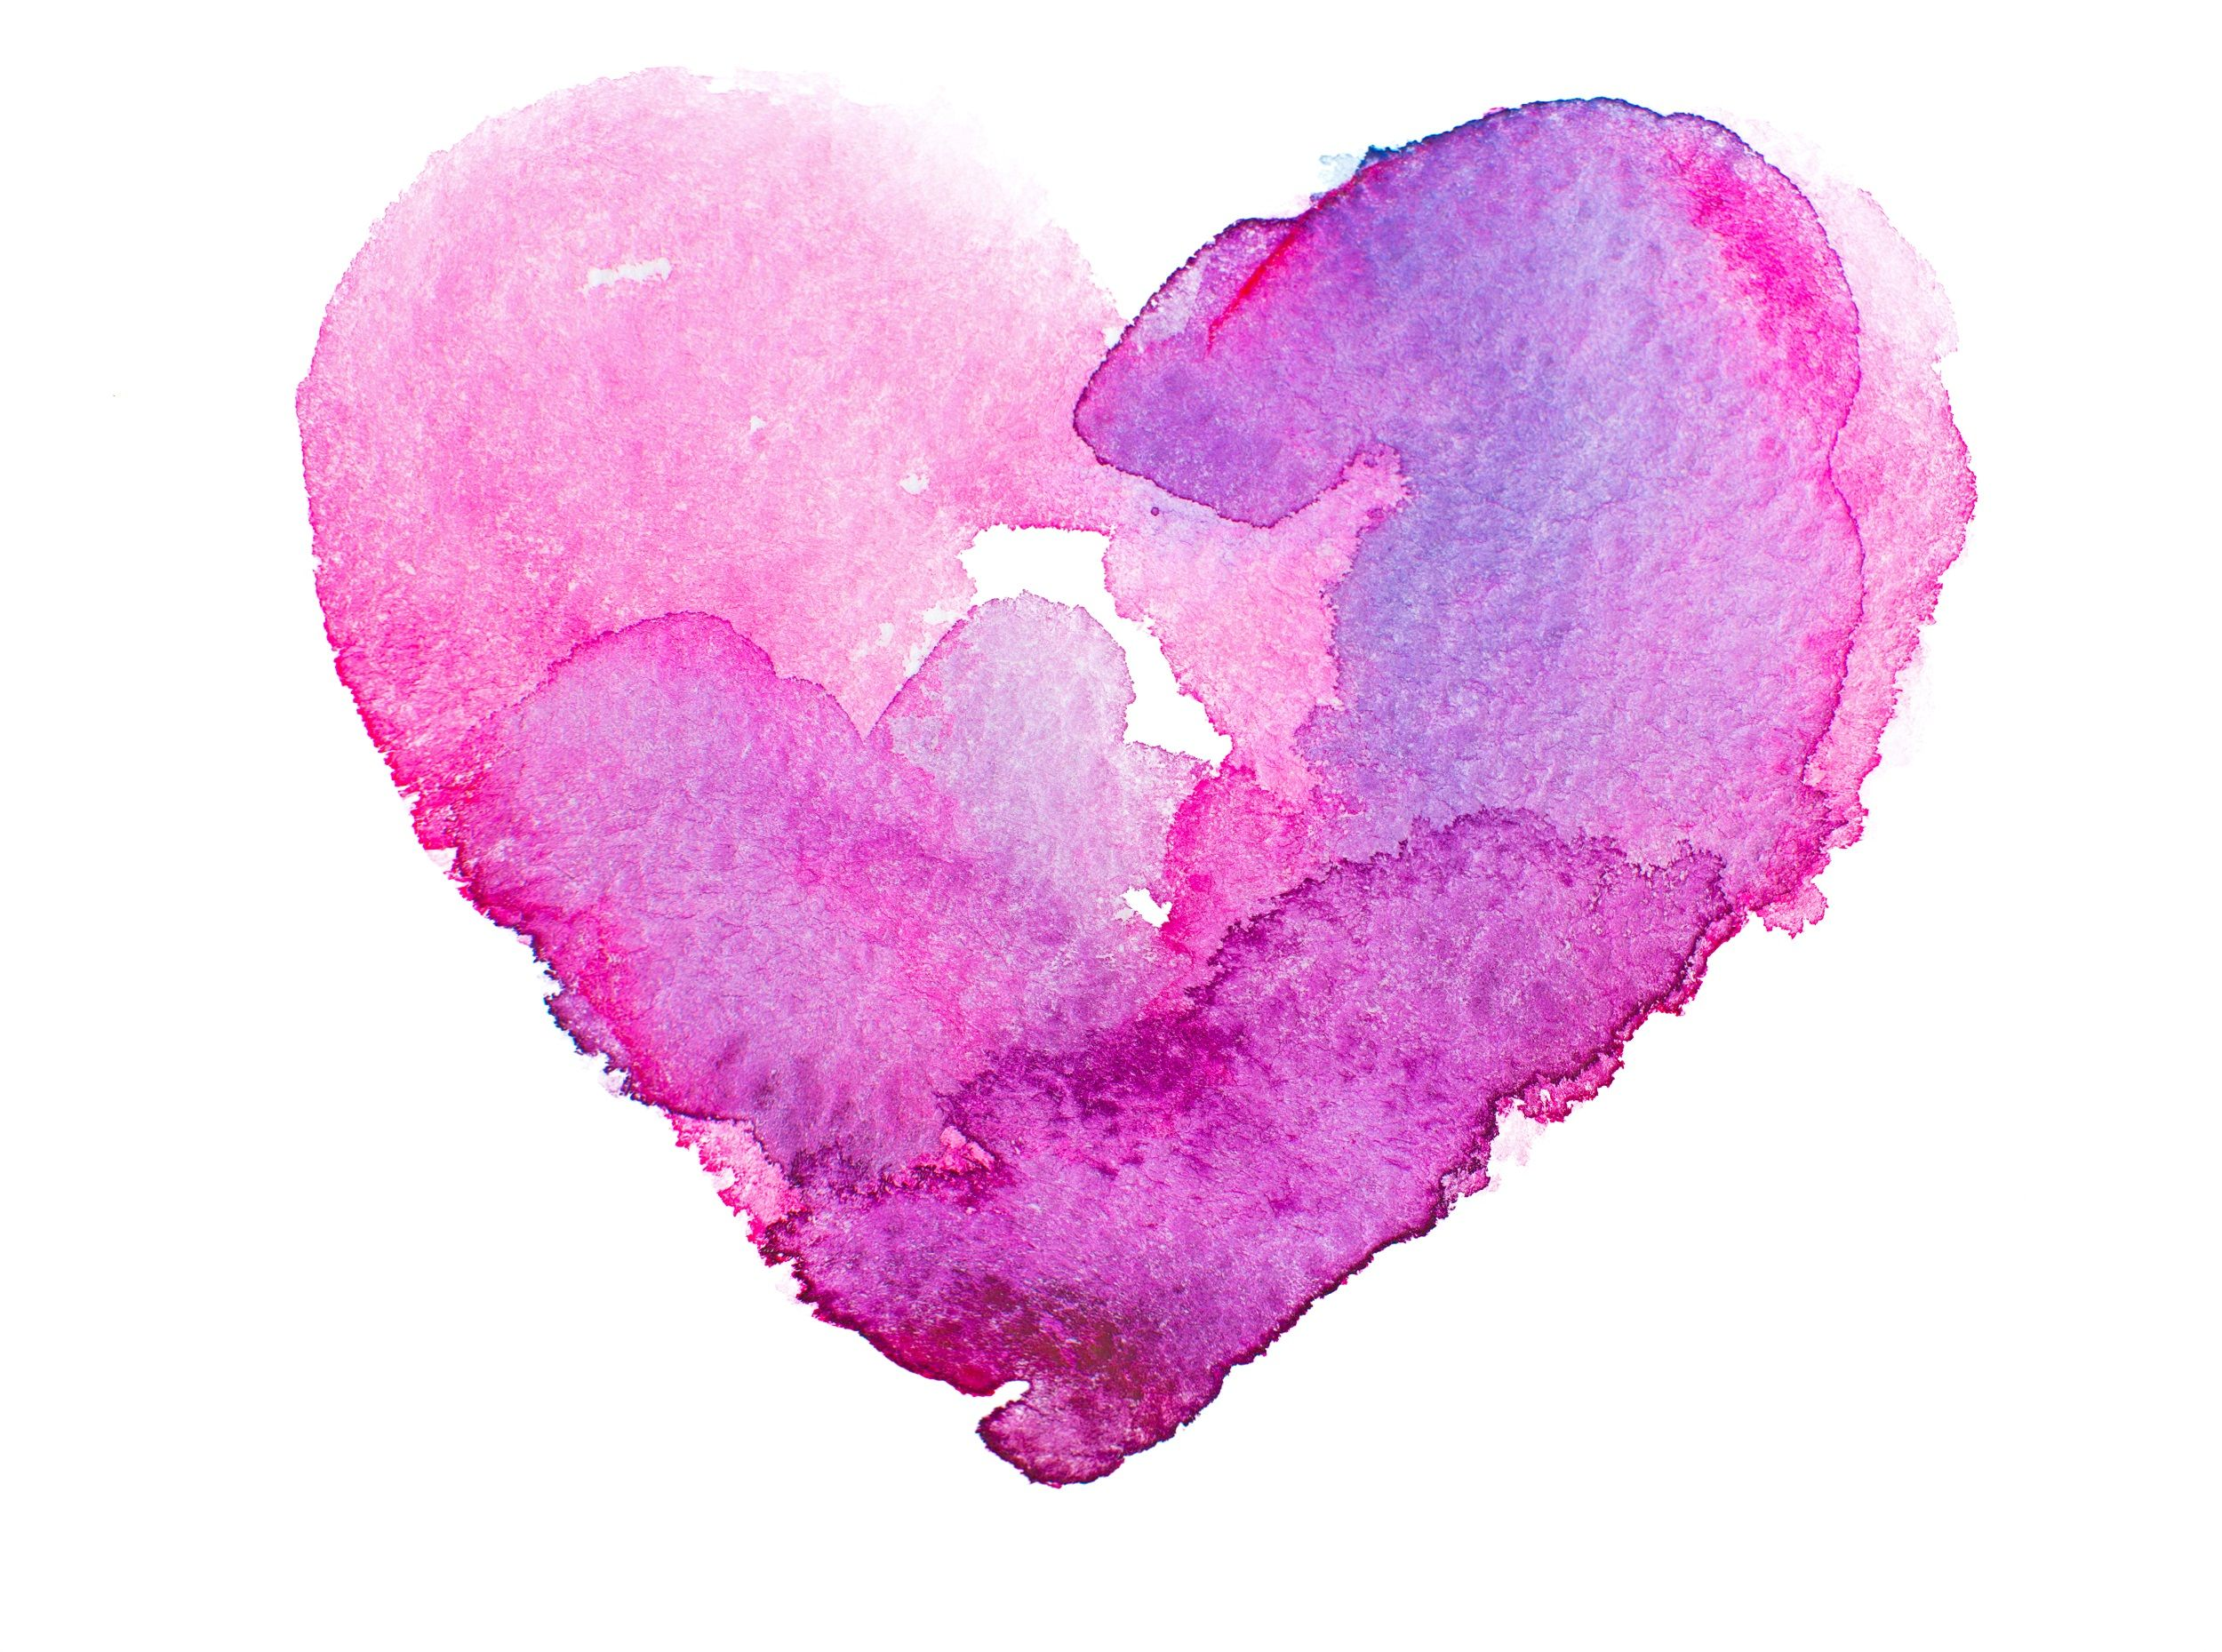 Pink watercolor heart St. Jude Fullerton doula